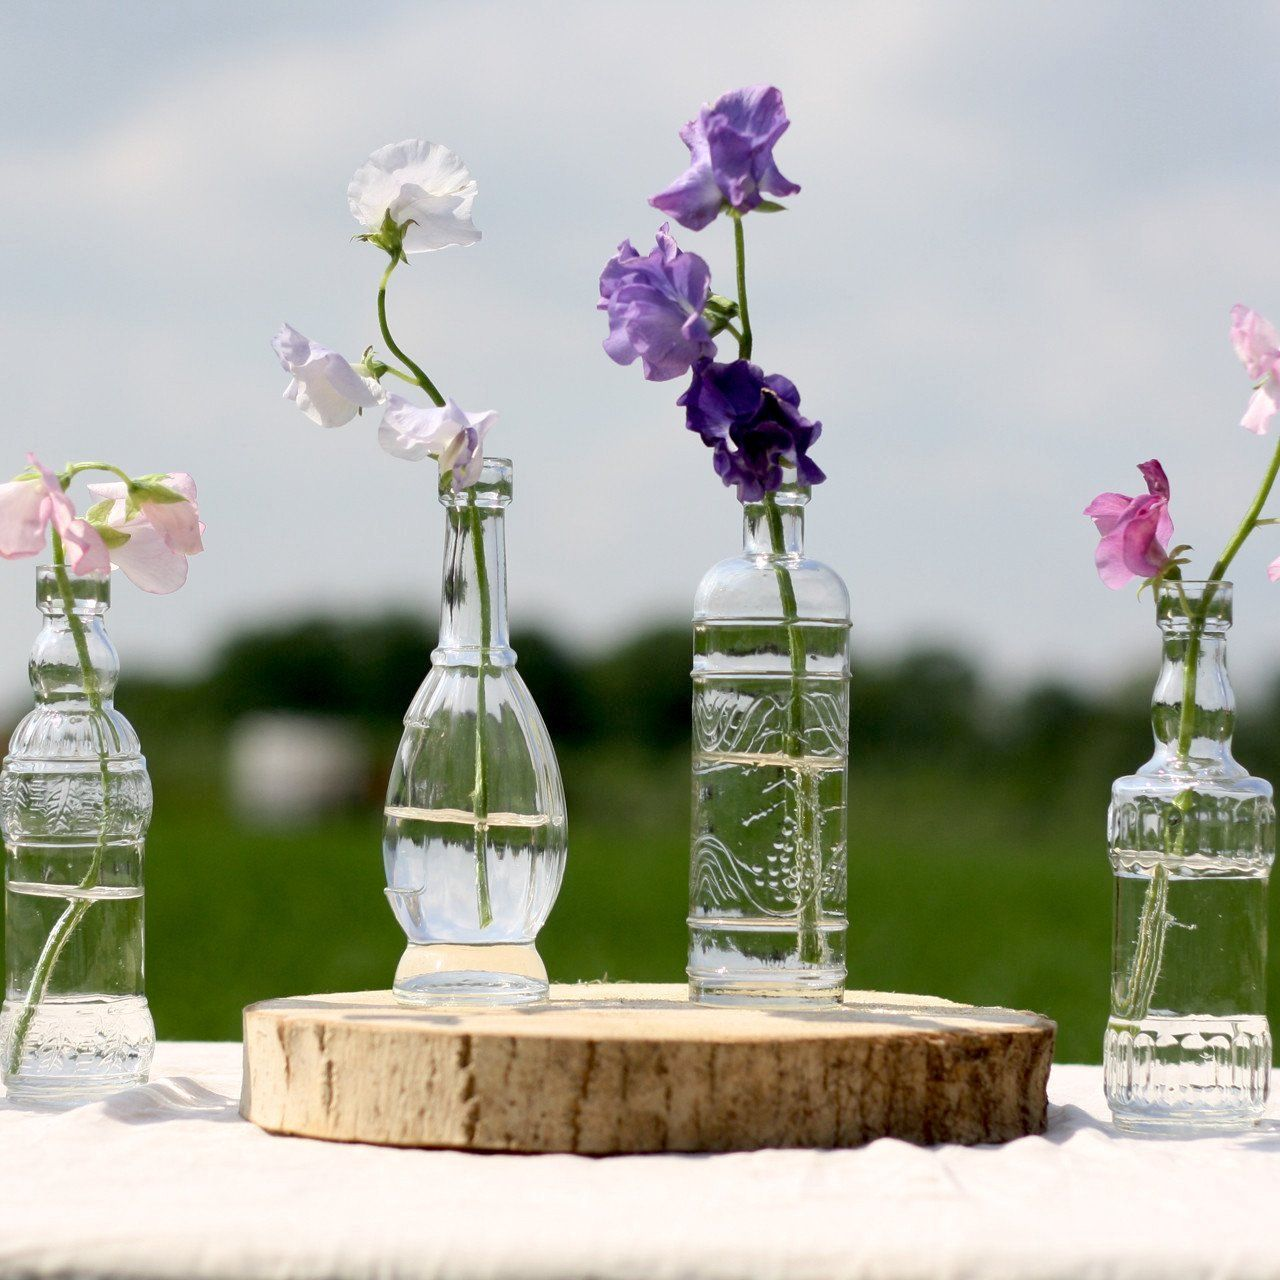 Flower Vases For Weddings: 6pc Camila Combo Set Decorative Vintage Glass Bottles And